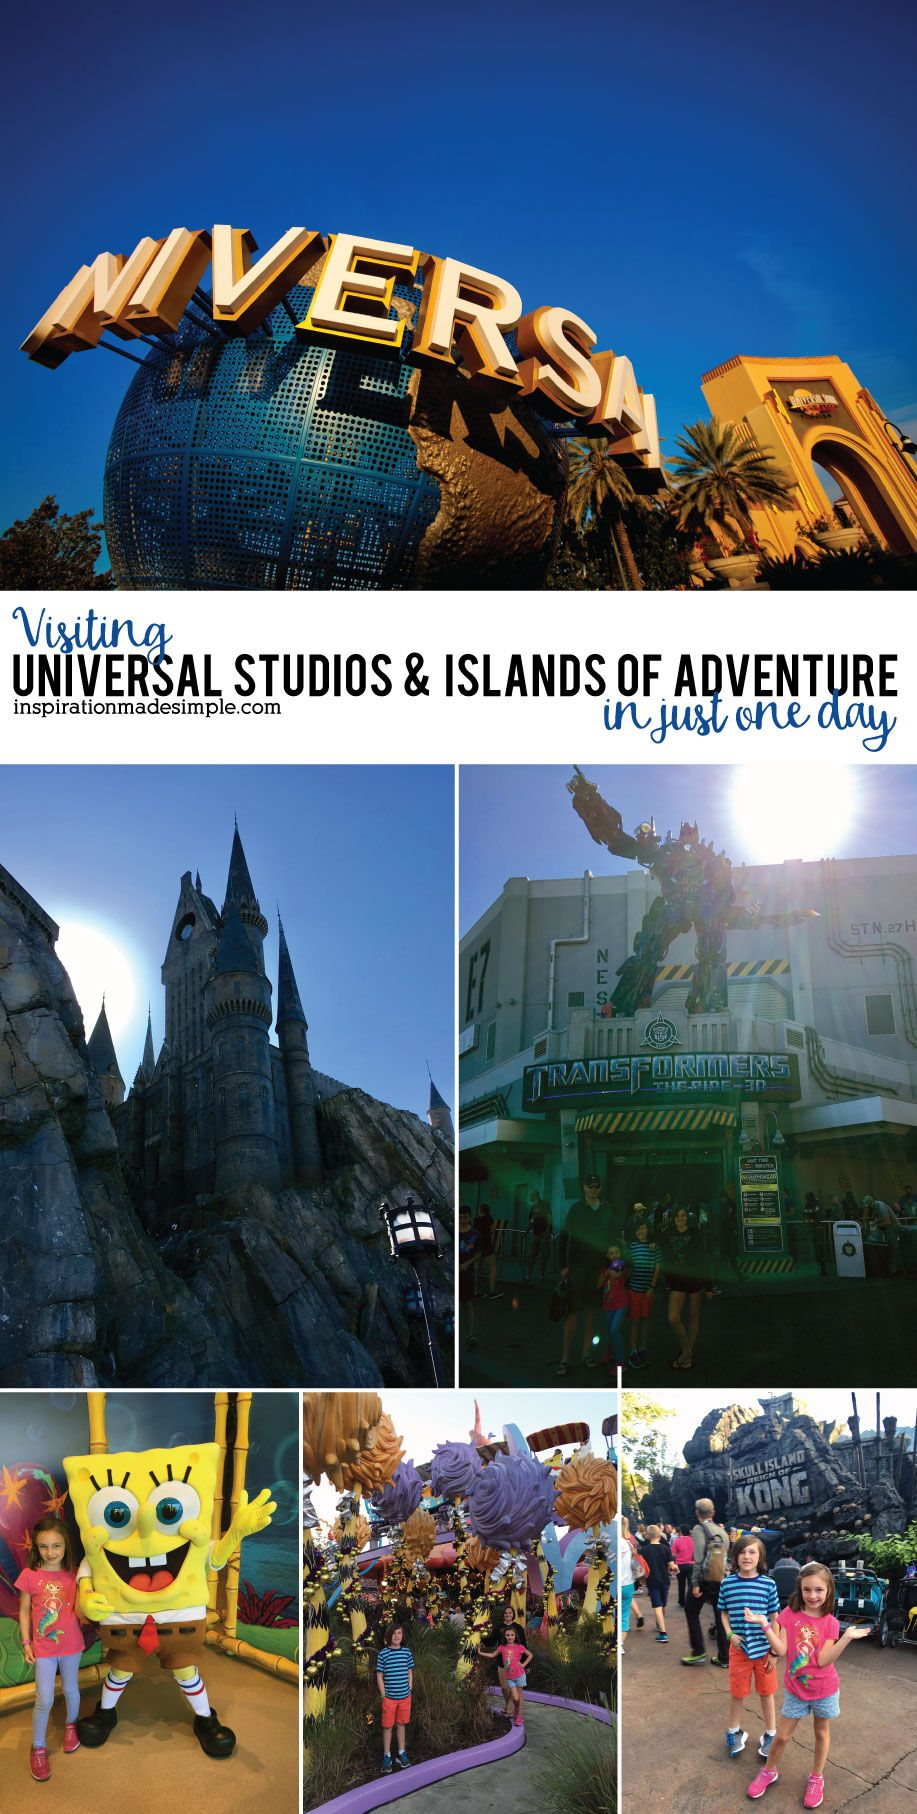 Tips and tricks to visiting Universal Studios and Islands of Adventure in just one day!